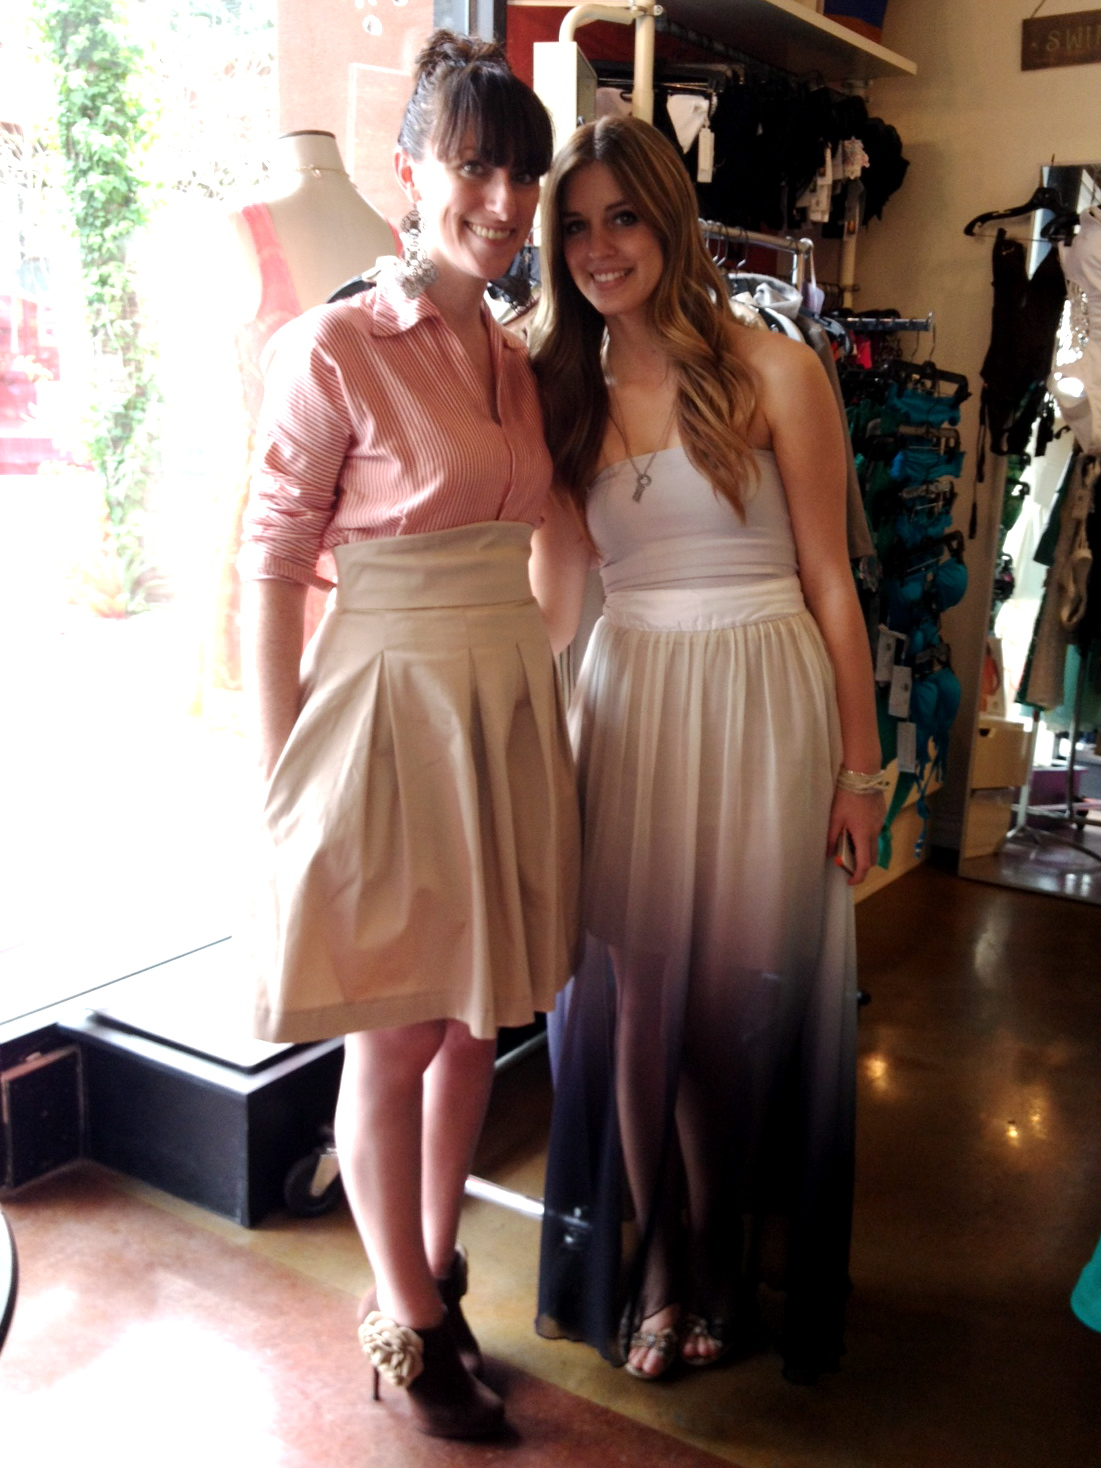 Chasing Sheila Bri Seeley Trunk Show Fash Black In Her Kori Top And Jaclyn Skirt Sydney Arianna Ombre Sheer Chiffon